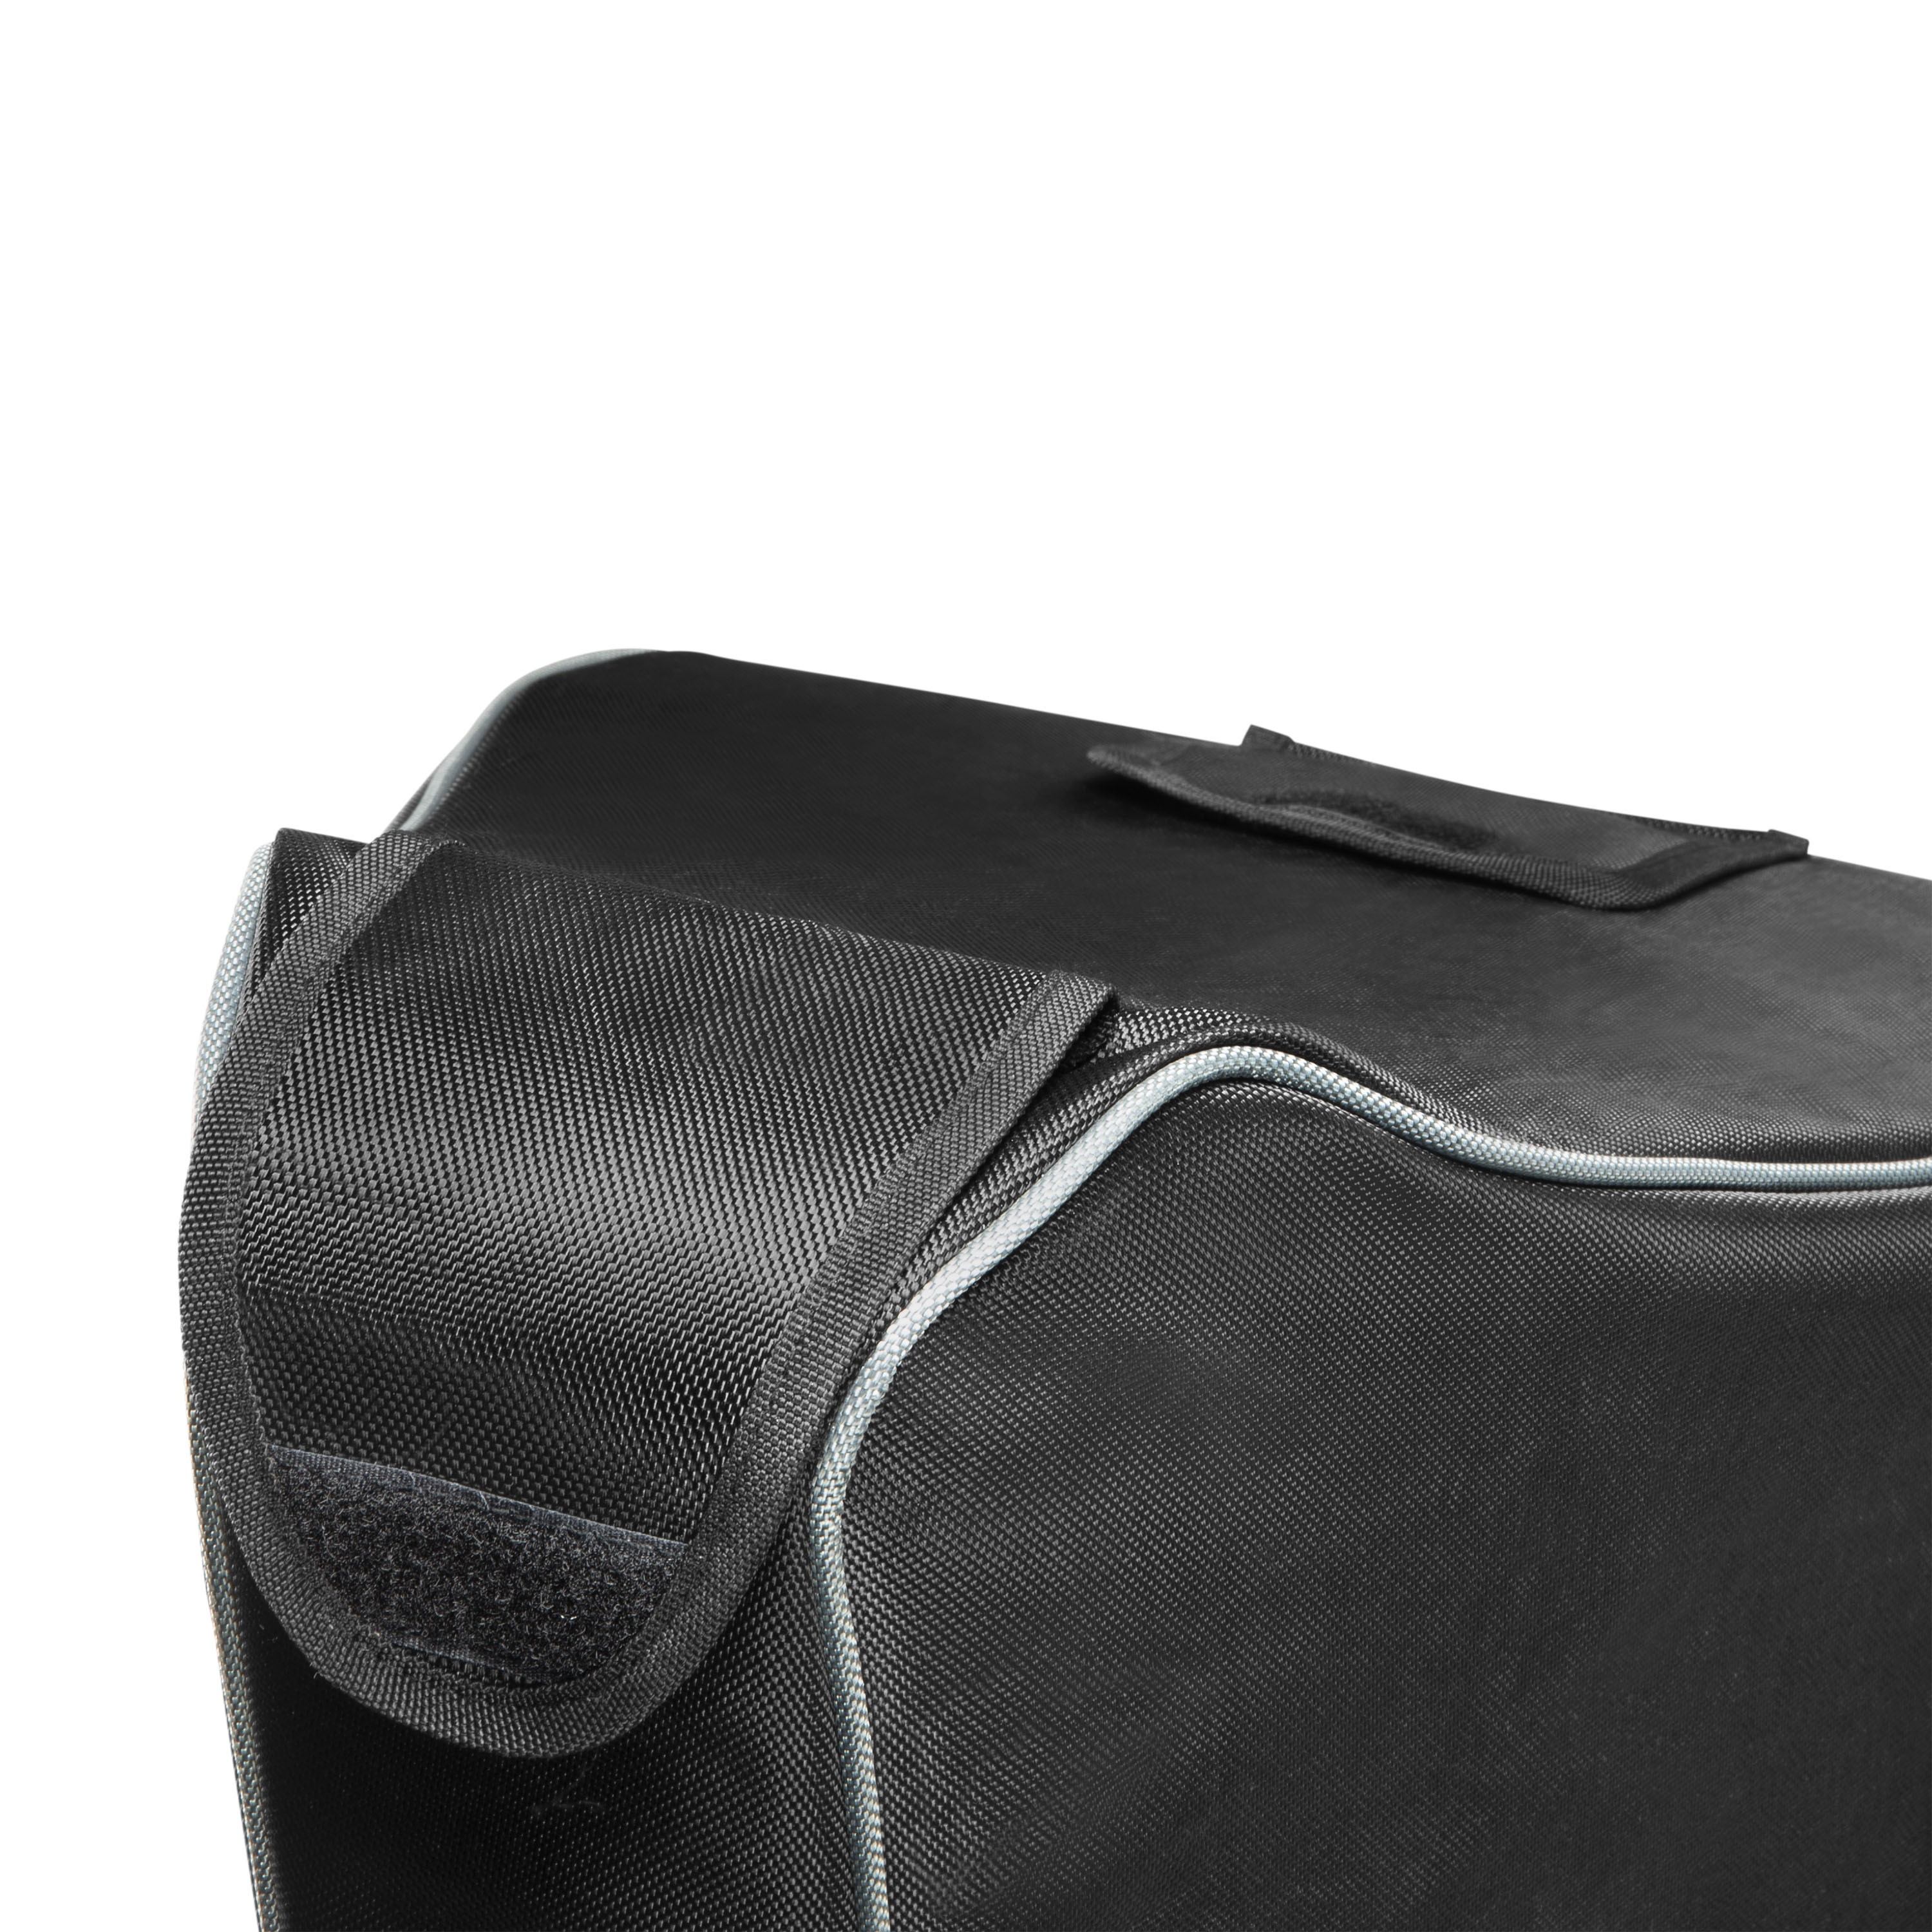 MAUI P900 SUB PC Padded Slip Cover for MAUI P900 Subwoofer